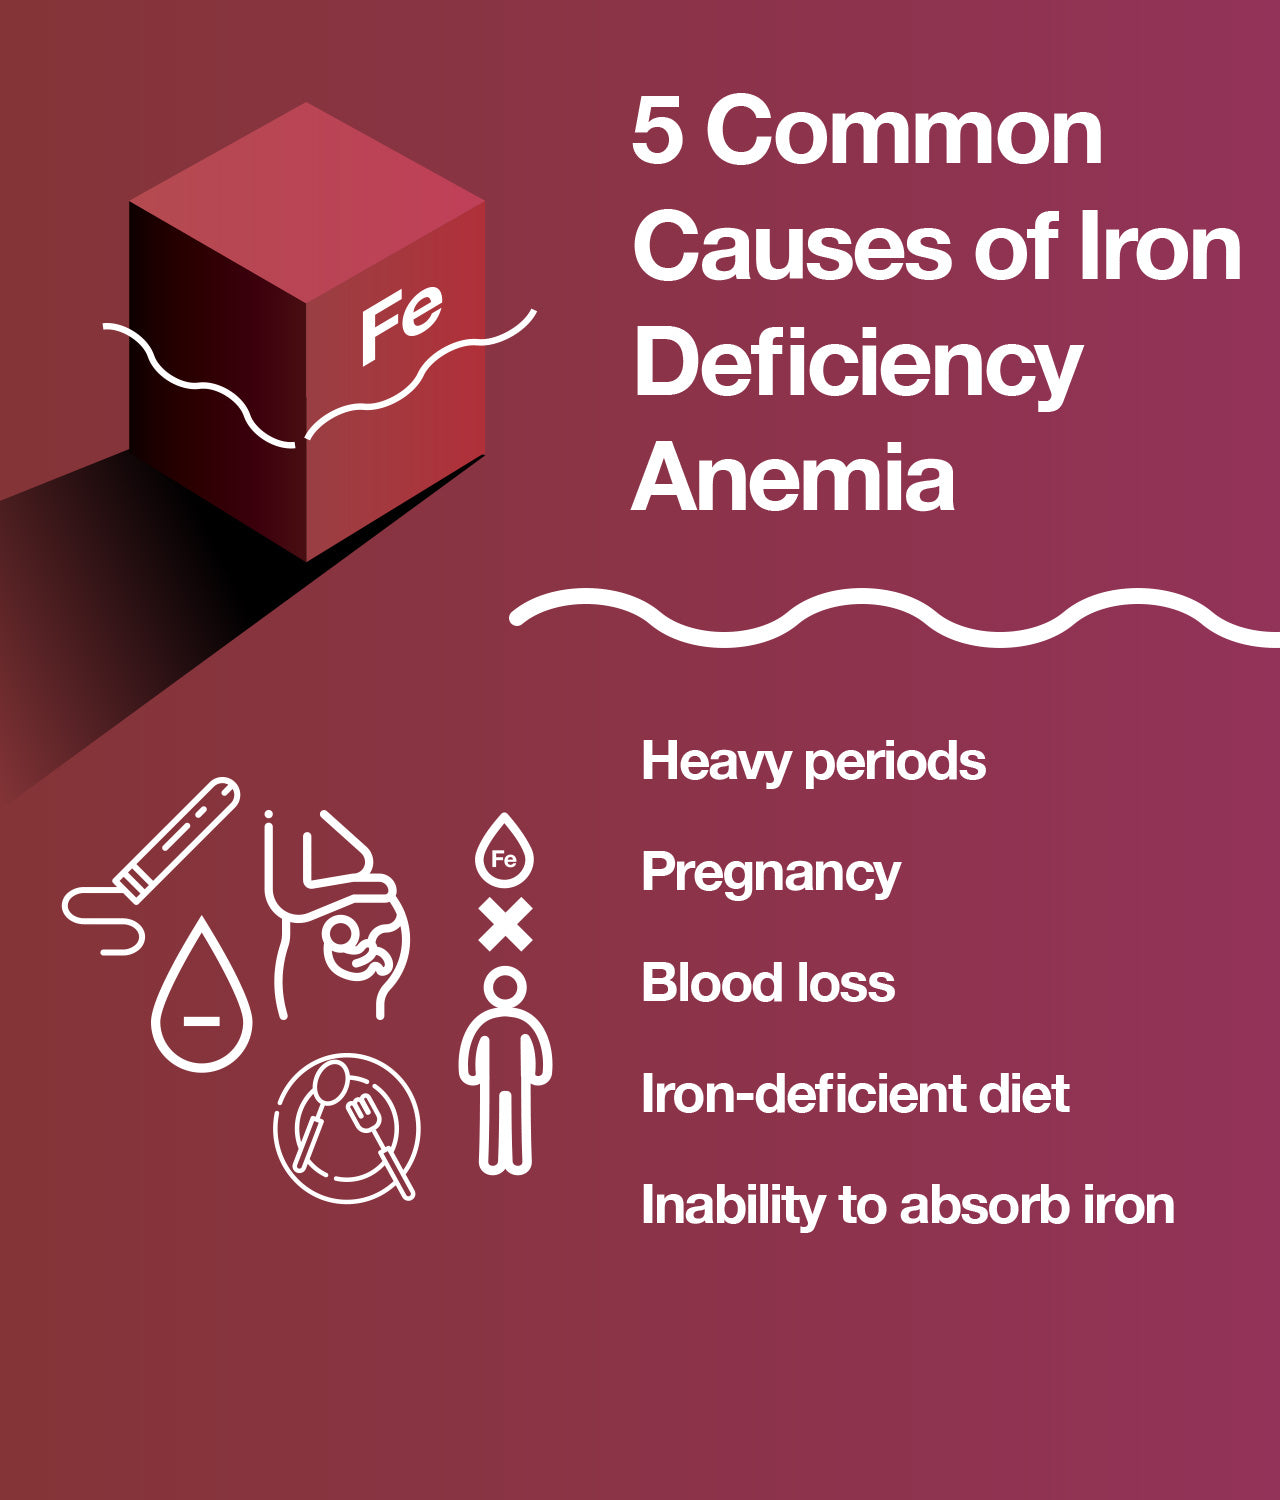 Causes of iron deficiency anemia